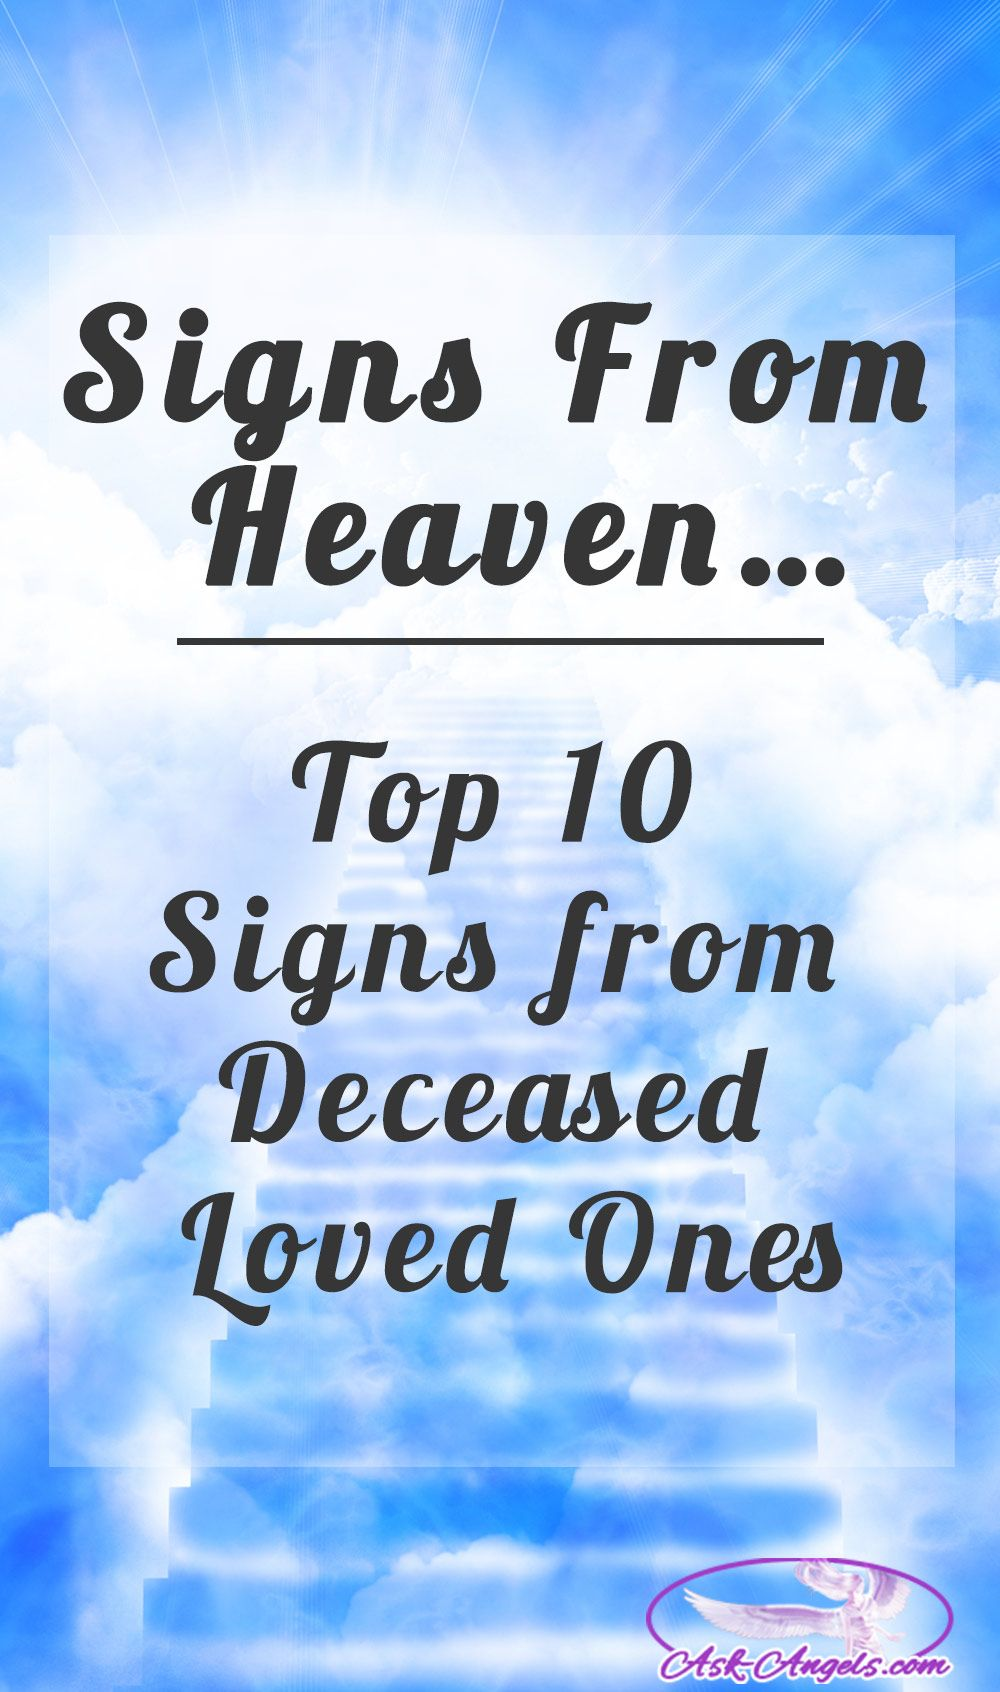 Quotes For Departed Loved Ones: Signs From Heaven… Top 9 Signs From Deceased Loved Ones